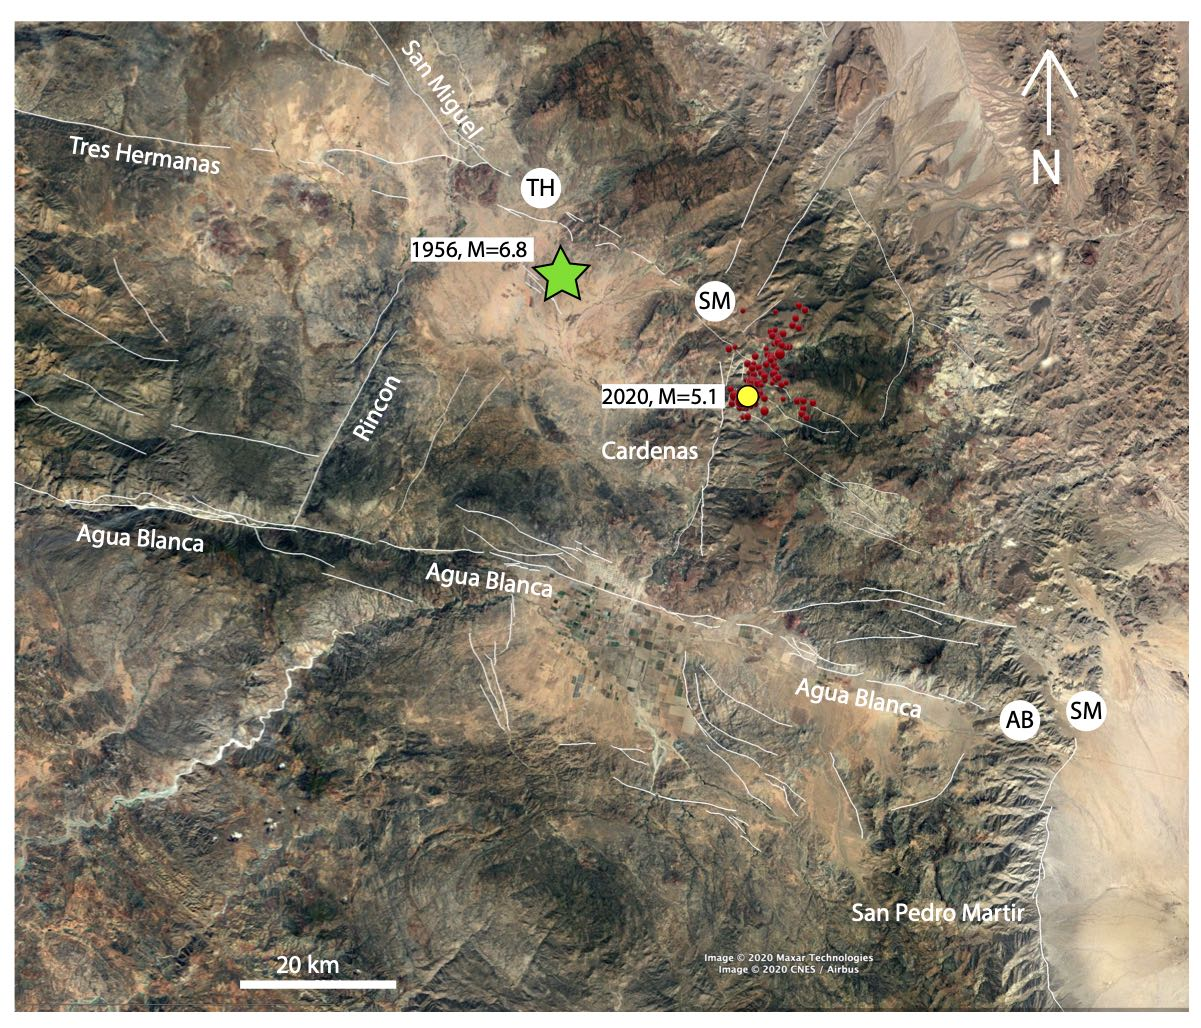 Map of the area inside the small square in Fig 1. White lines represent main faults, including the projection of the Tres Hermanas (TH), San Miguel-Vallecitos (SM) and Agua Blanca (AB) faults. Green star marks part of the rupture area of the 1956 (magnitude-6.8) earthquake. Circles represent the epicenters of the magnitude-5.1 August 17, 2020 earthquake (yellow), its foreshock and aftershocks (red).